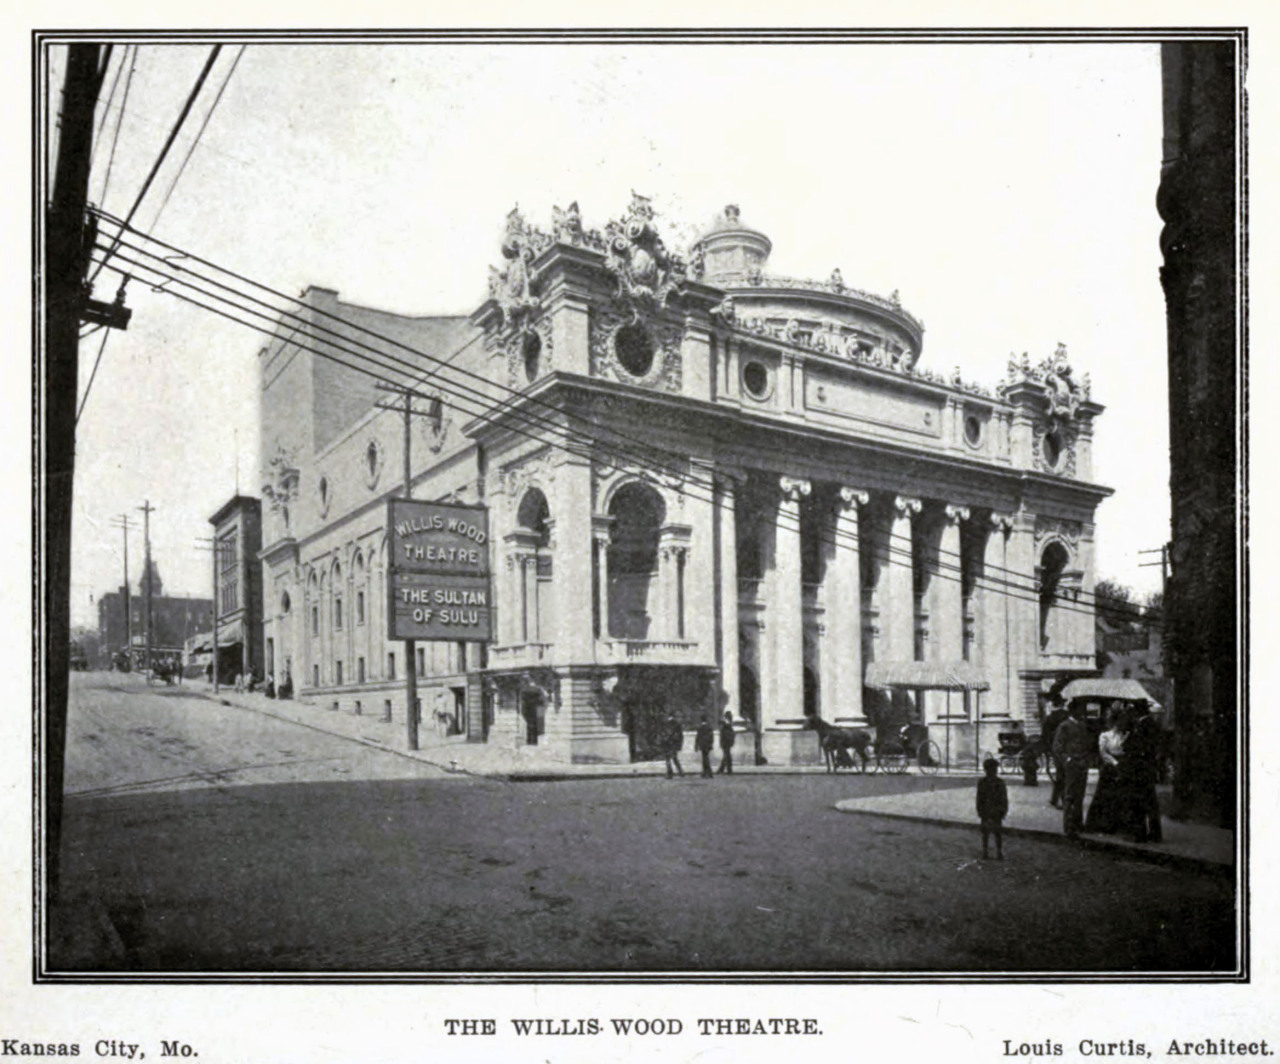 The Willis Wood Theatre, Kansas City